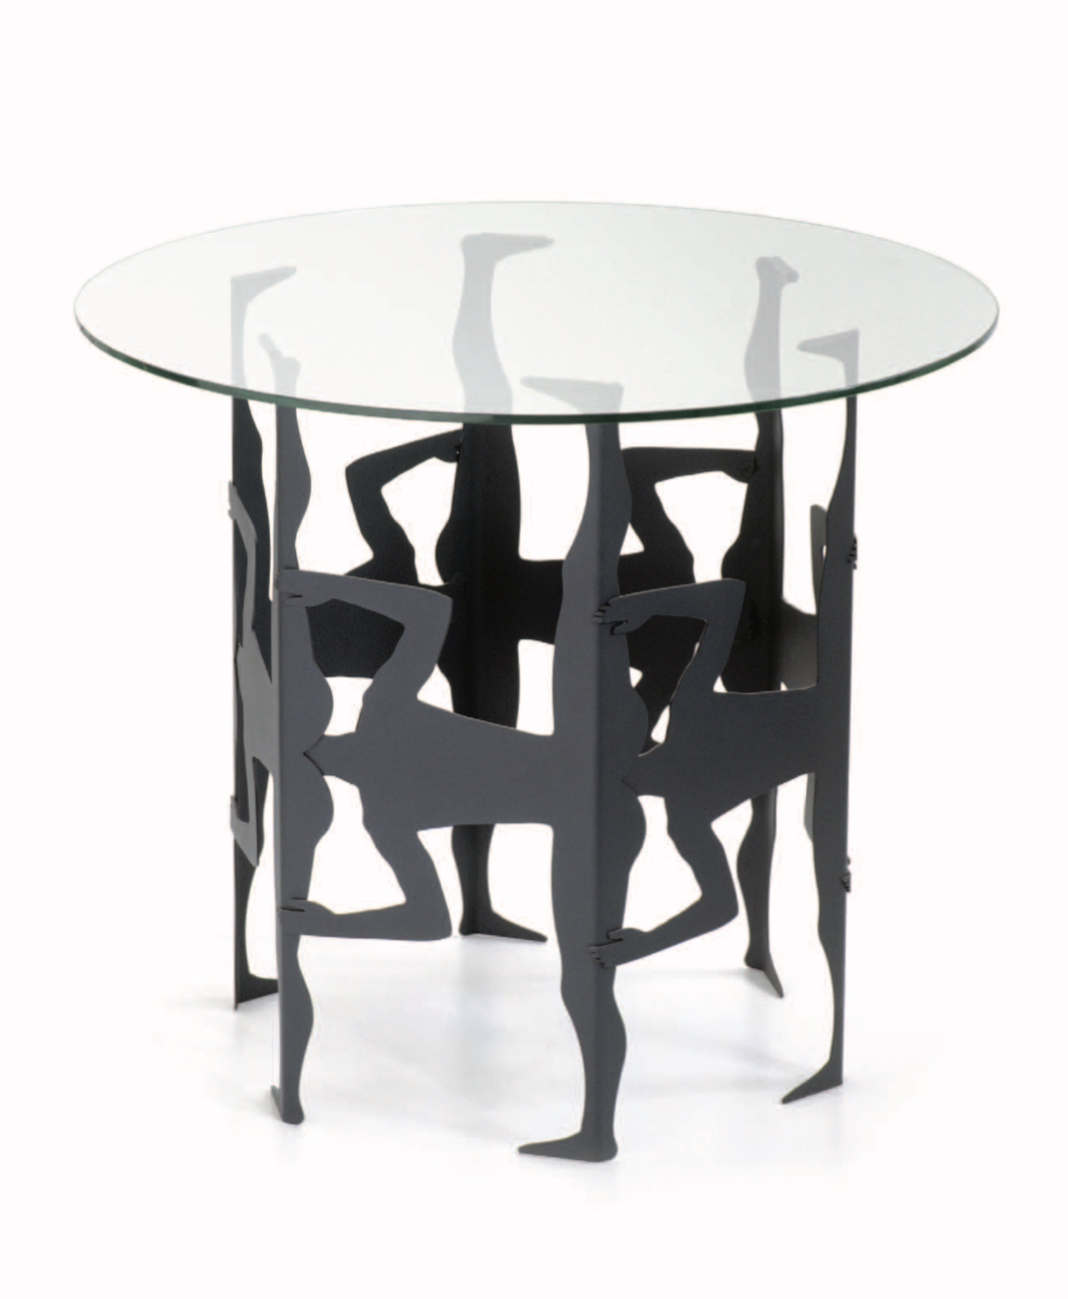 Coffee Table DESIGN SUMMIT by Stiletto / Landes